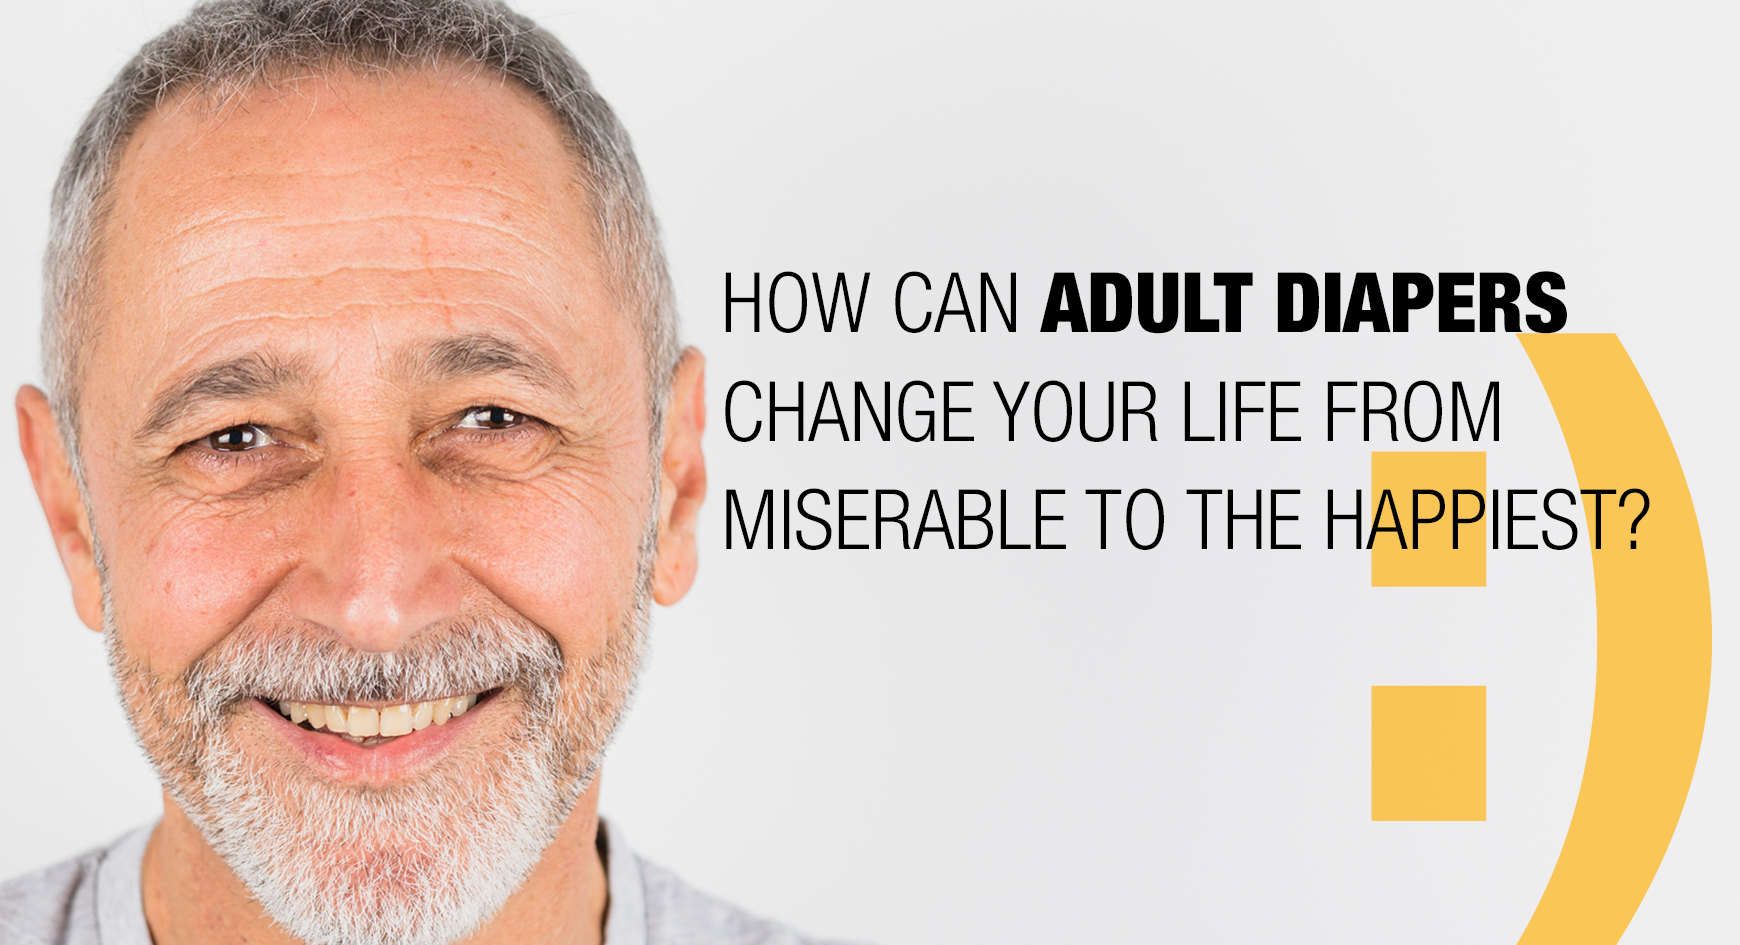 How can adult diapers change your life from miserable to the happiest?